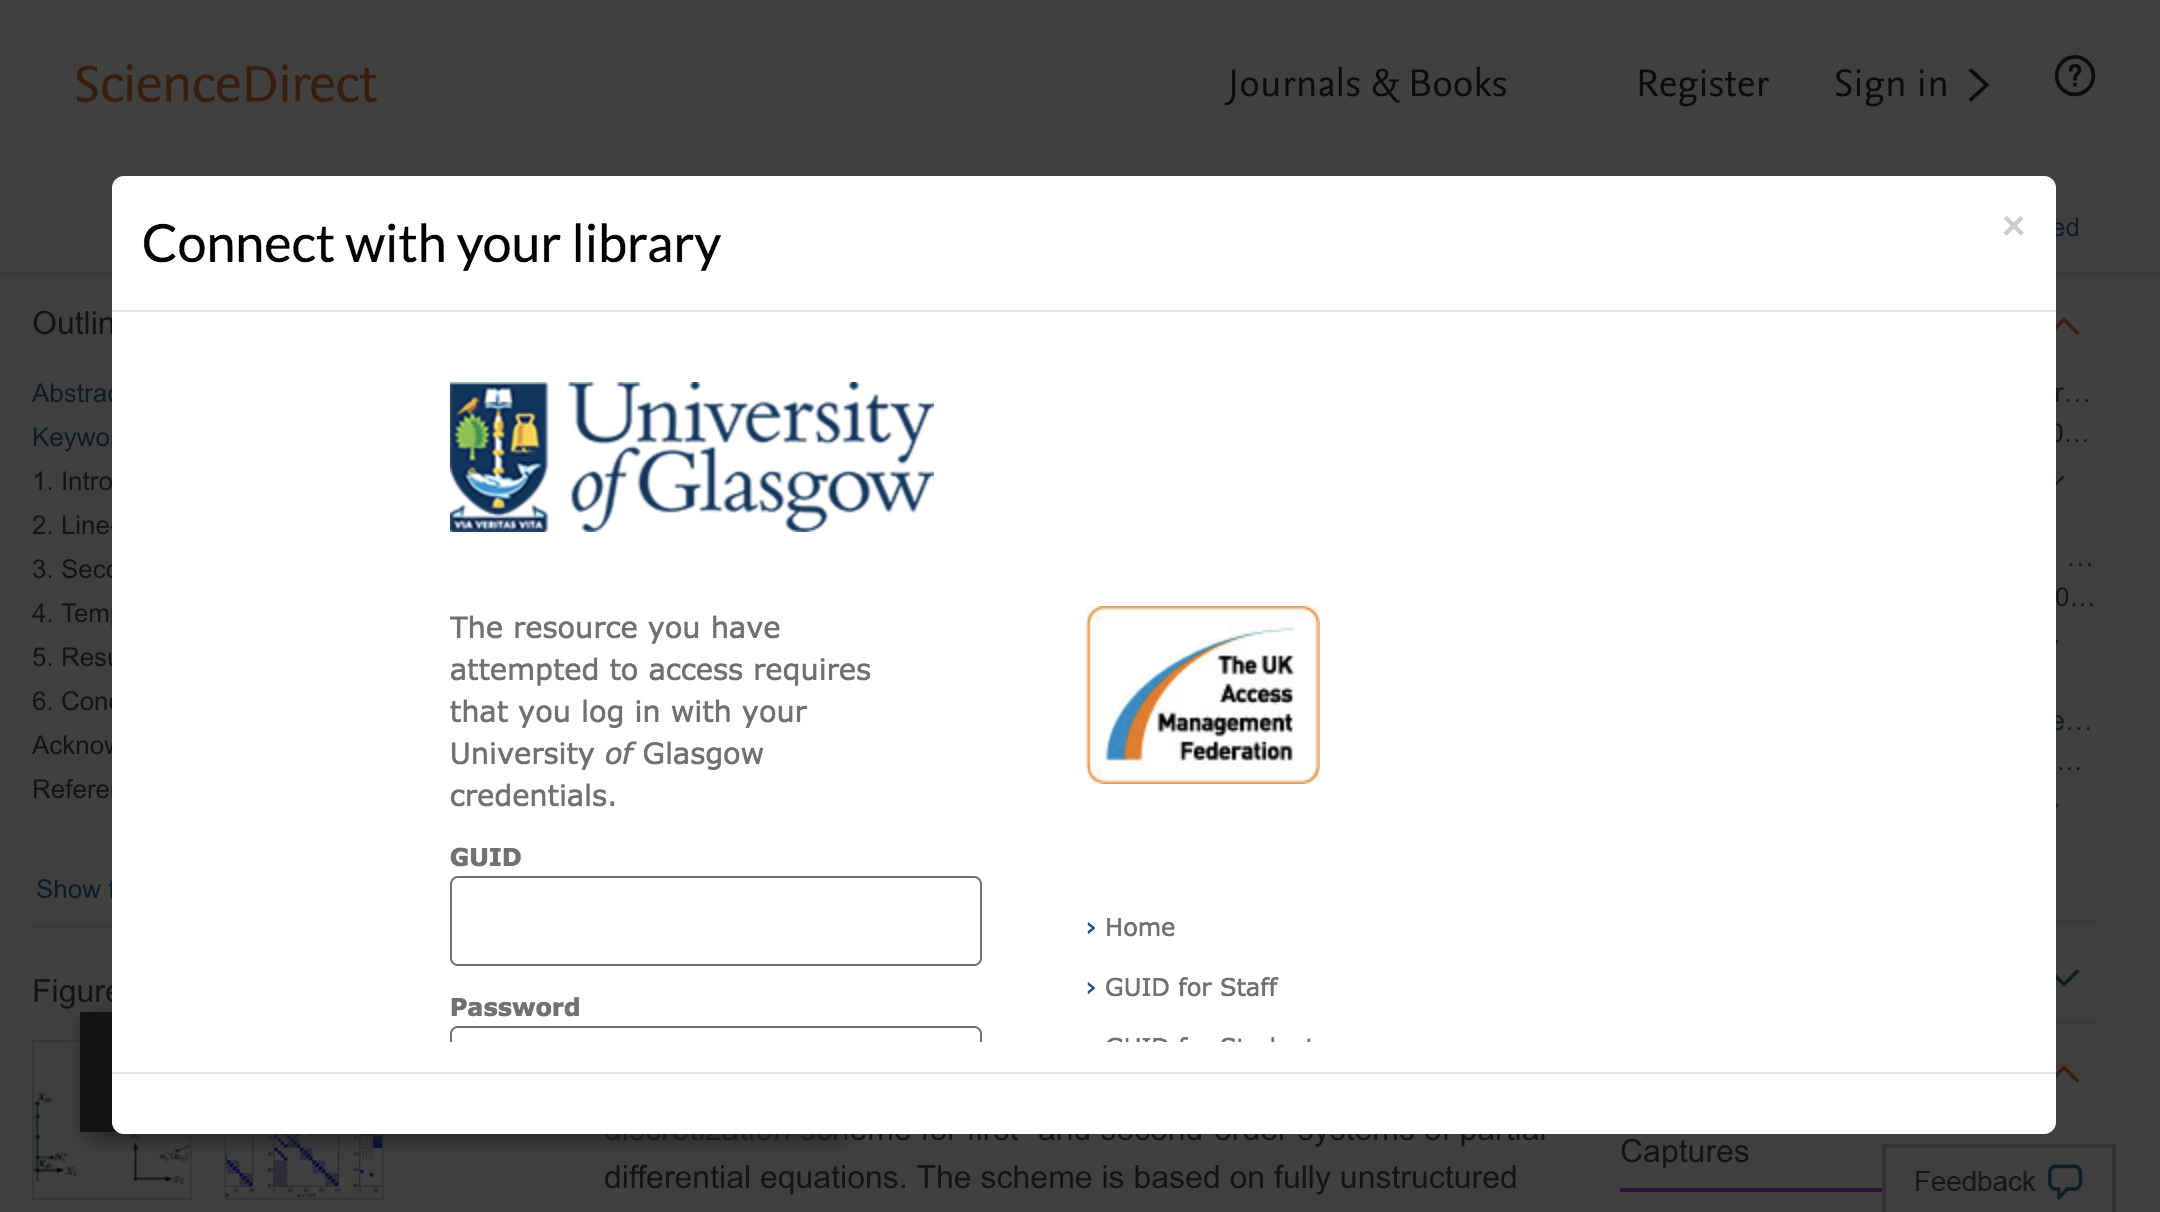 Enter University of Glasgow credentials to access journal subscriptions.